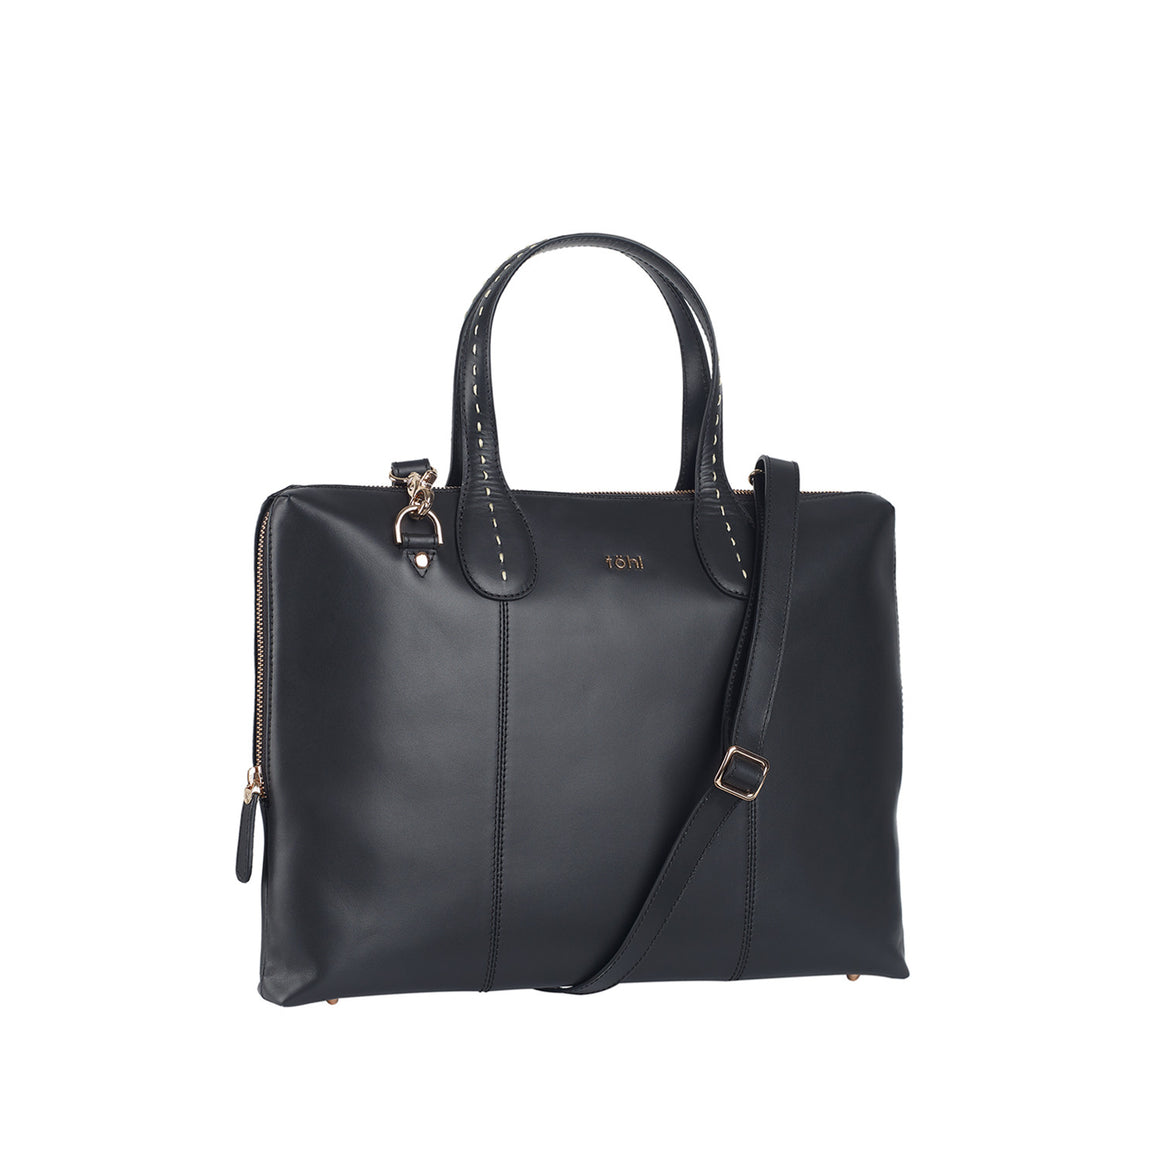 SB 0019 - TOHL VESEY WOMEN'S SLIM VALISE - CHARCOAL BLACK